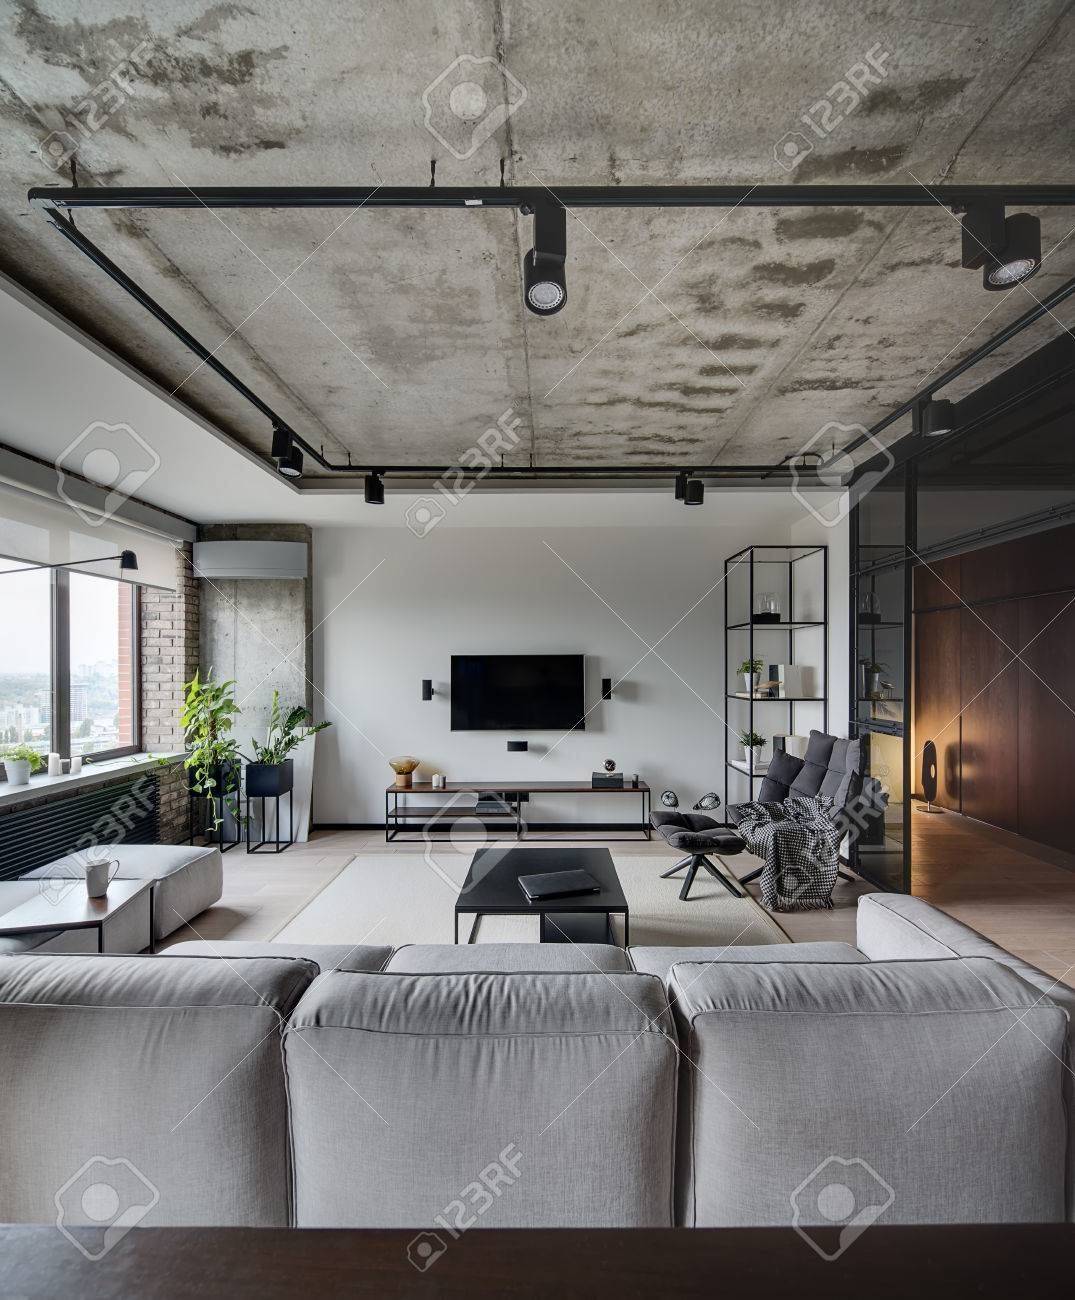 Loft Style Sitting Room With White, Brick And Concrete Walls. There Is Sofa